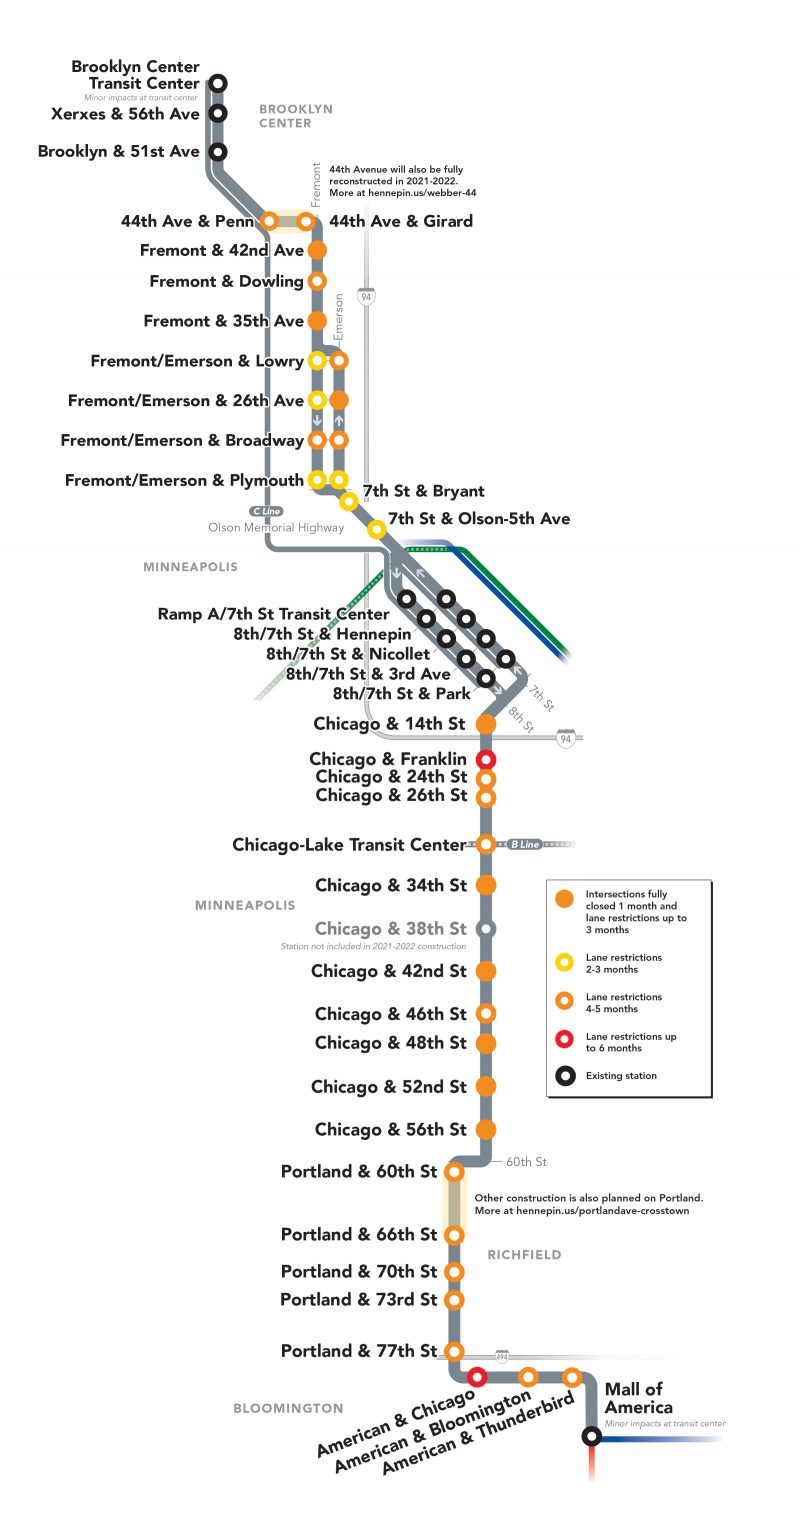 Metro D Line construction has started